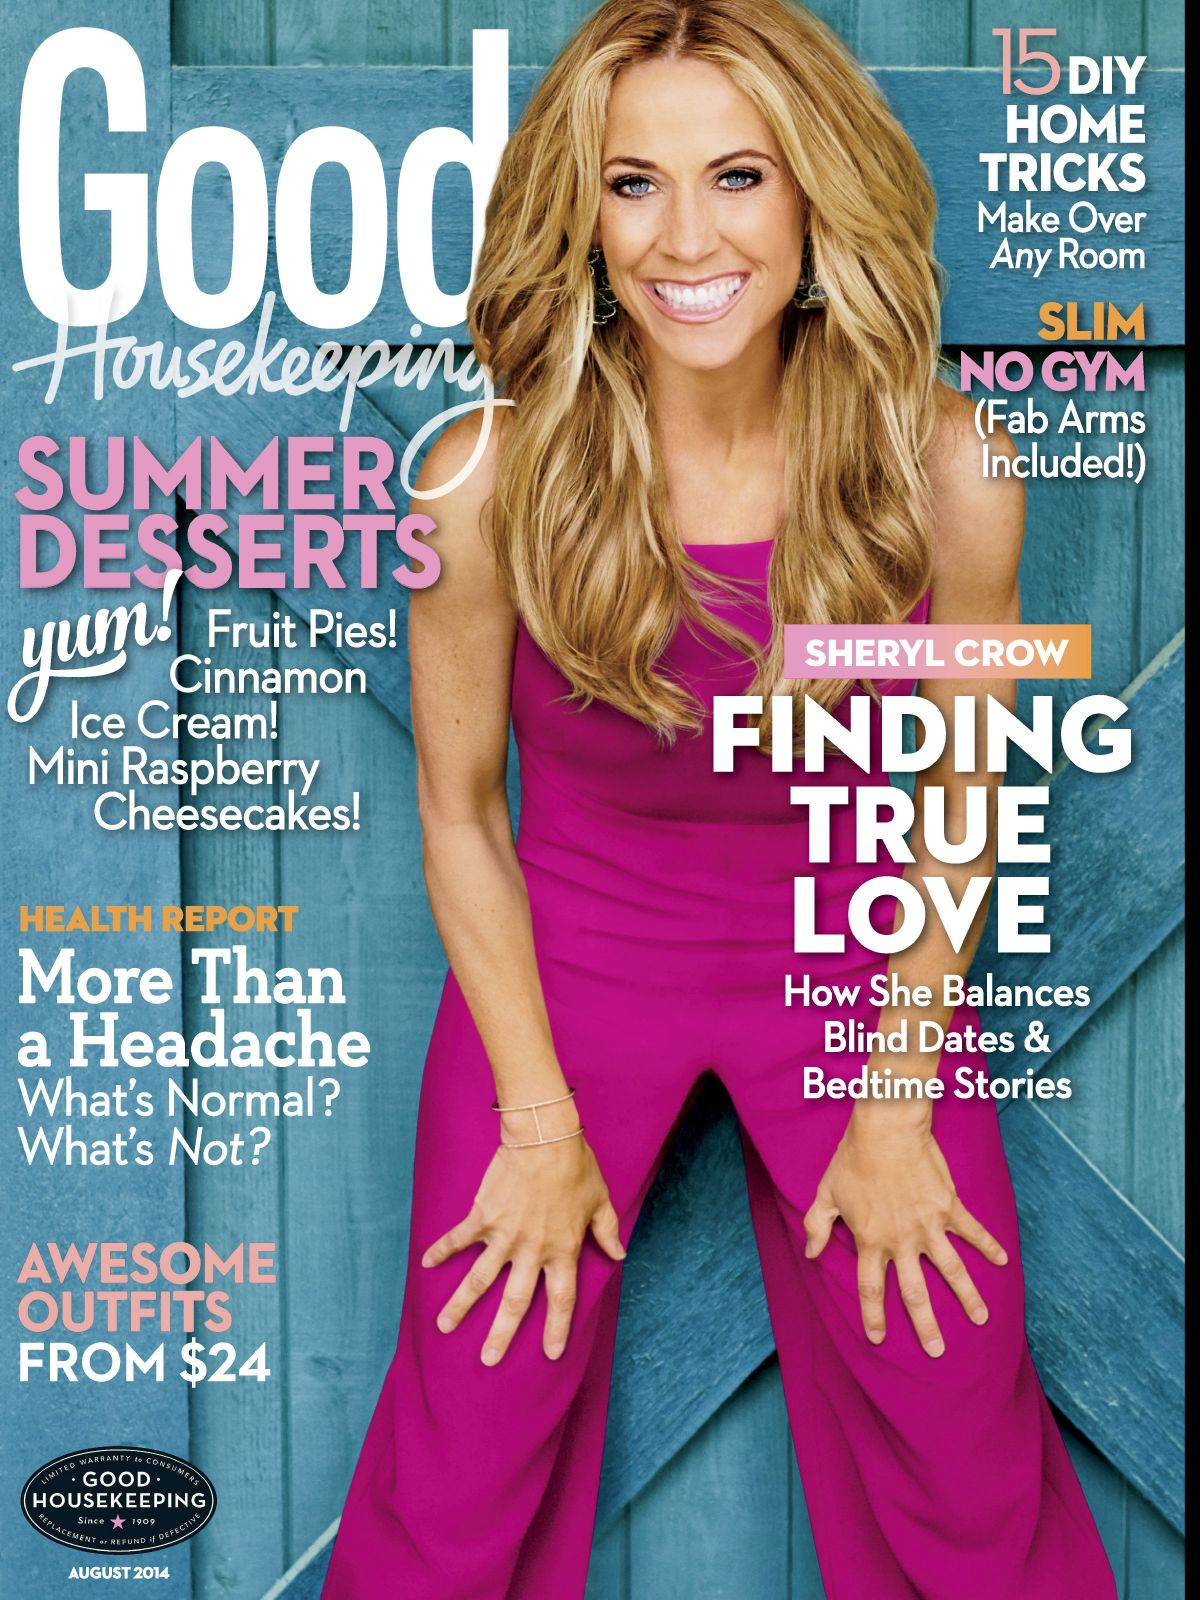 SHERYL CROW on the Cover of Good Housekeeping Magazine, August 2014 Issue